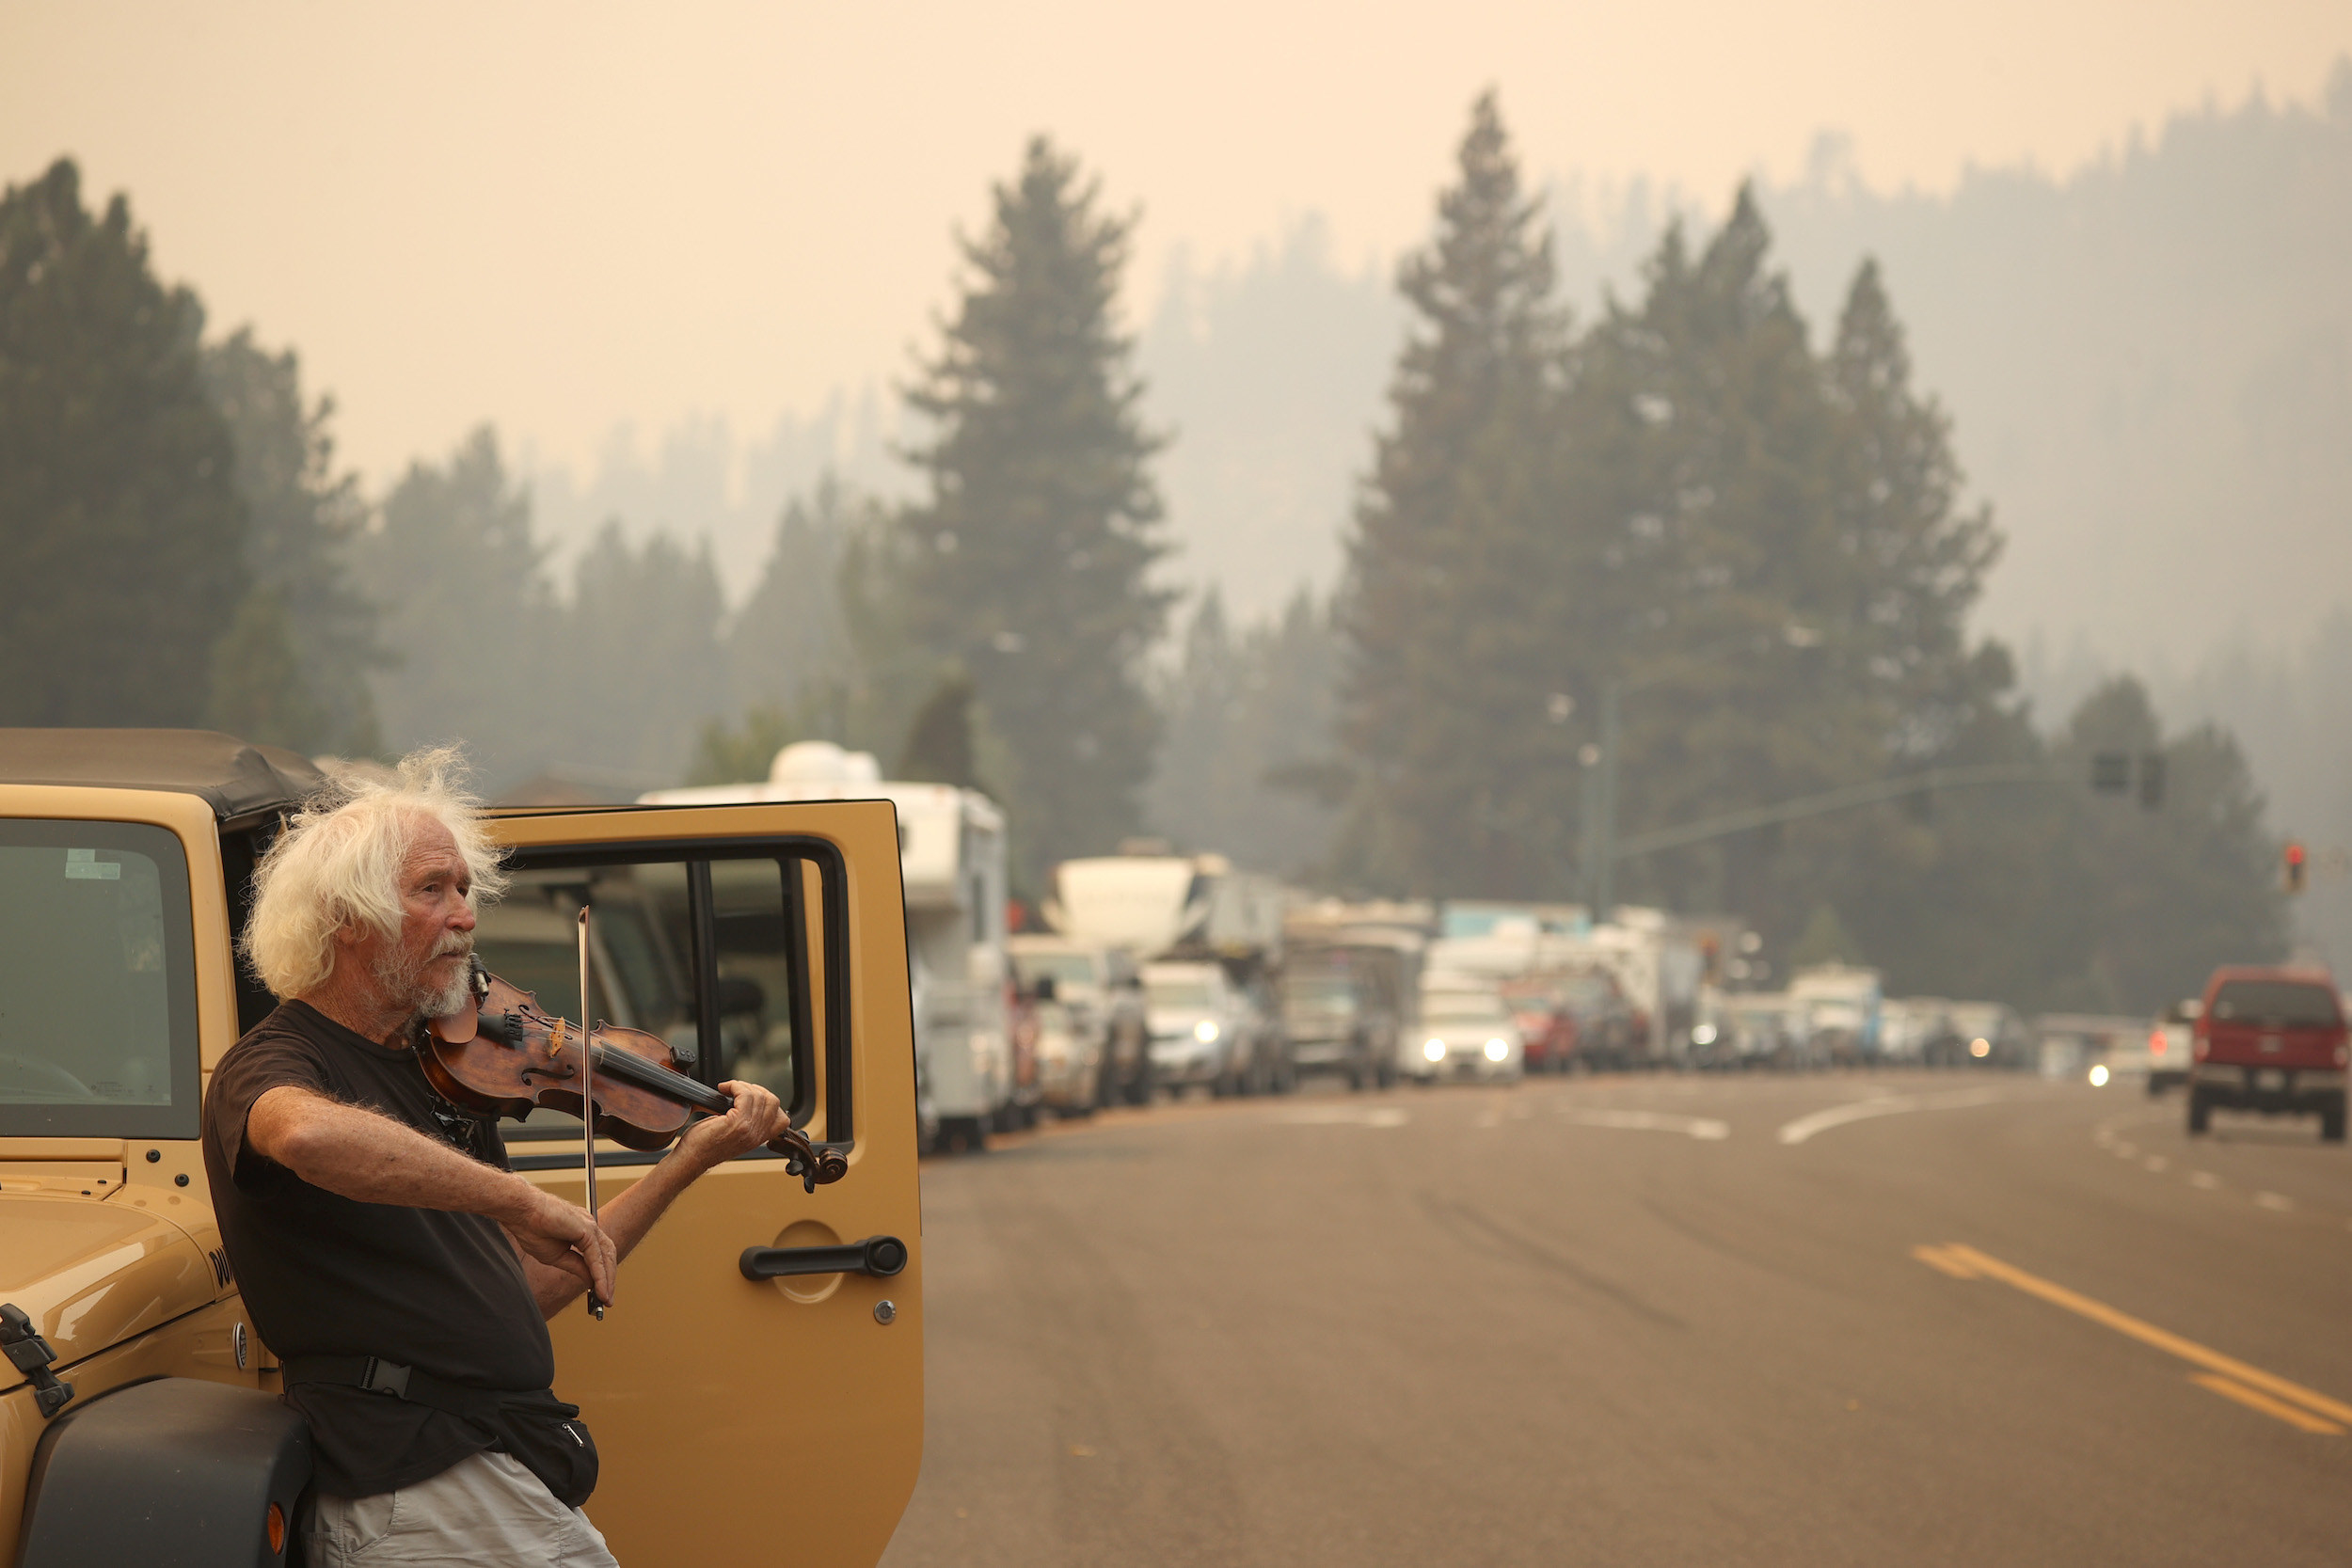 A man plays violin and leans against his Jeep in front of several cars in bumper-to-bumper traffic under a smoky sky